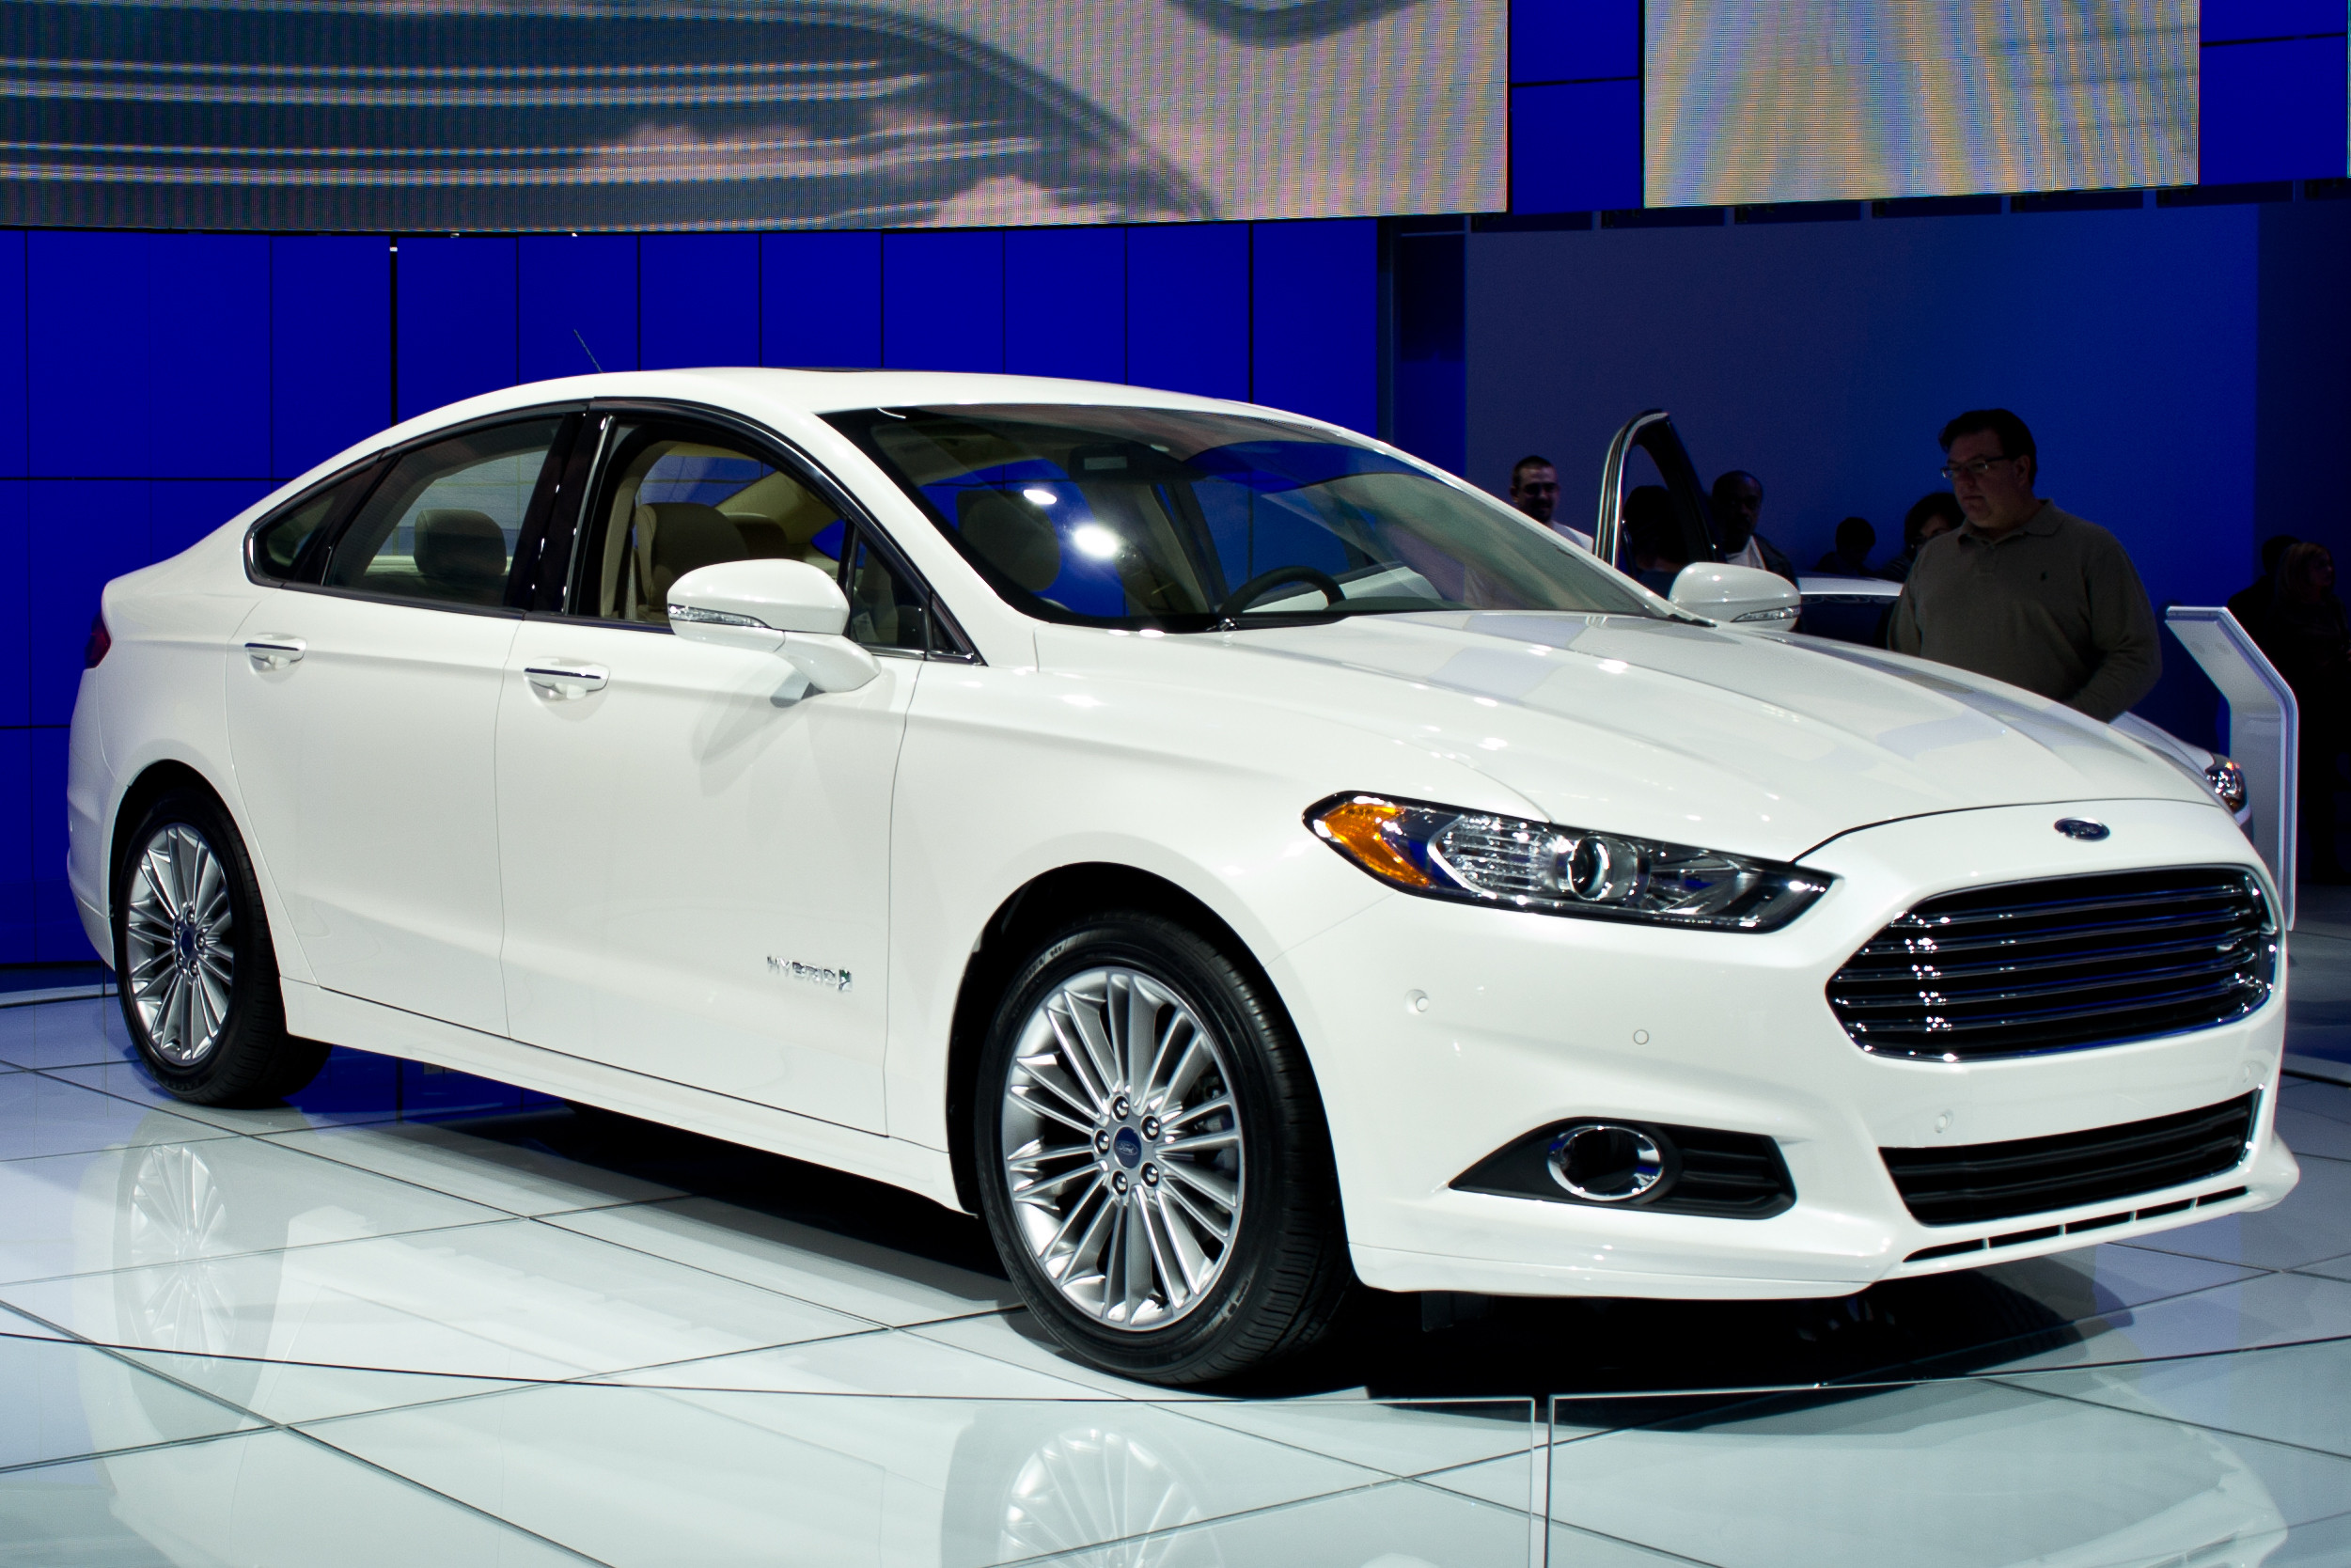 Ford to Roll Out 13 Electric Cars by 2020